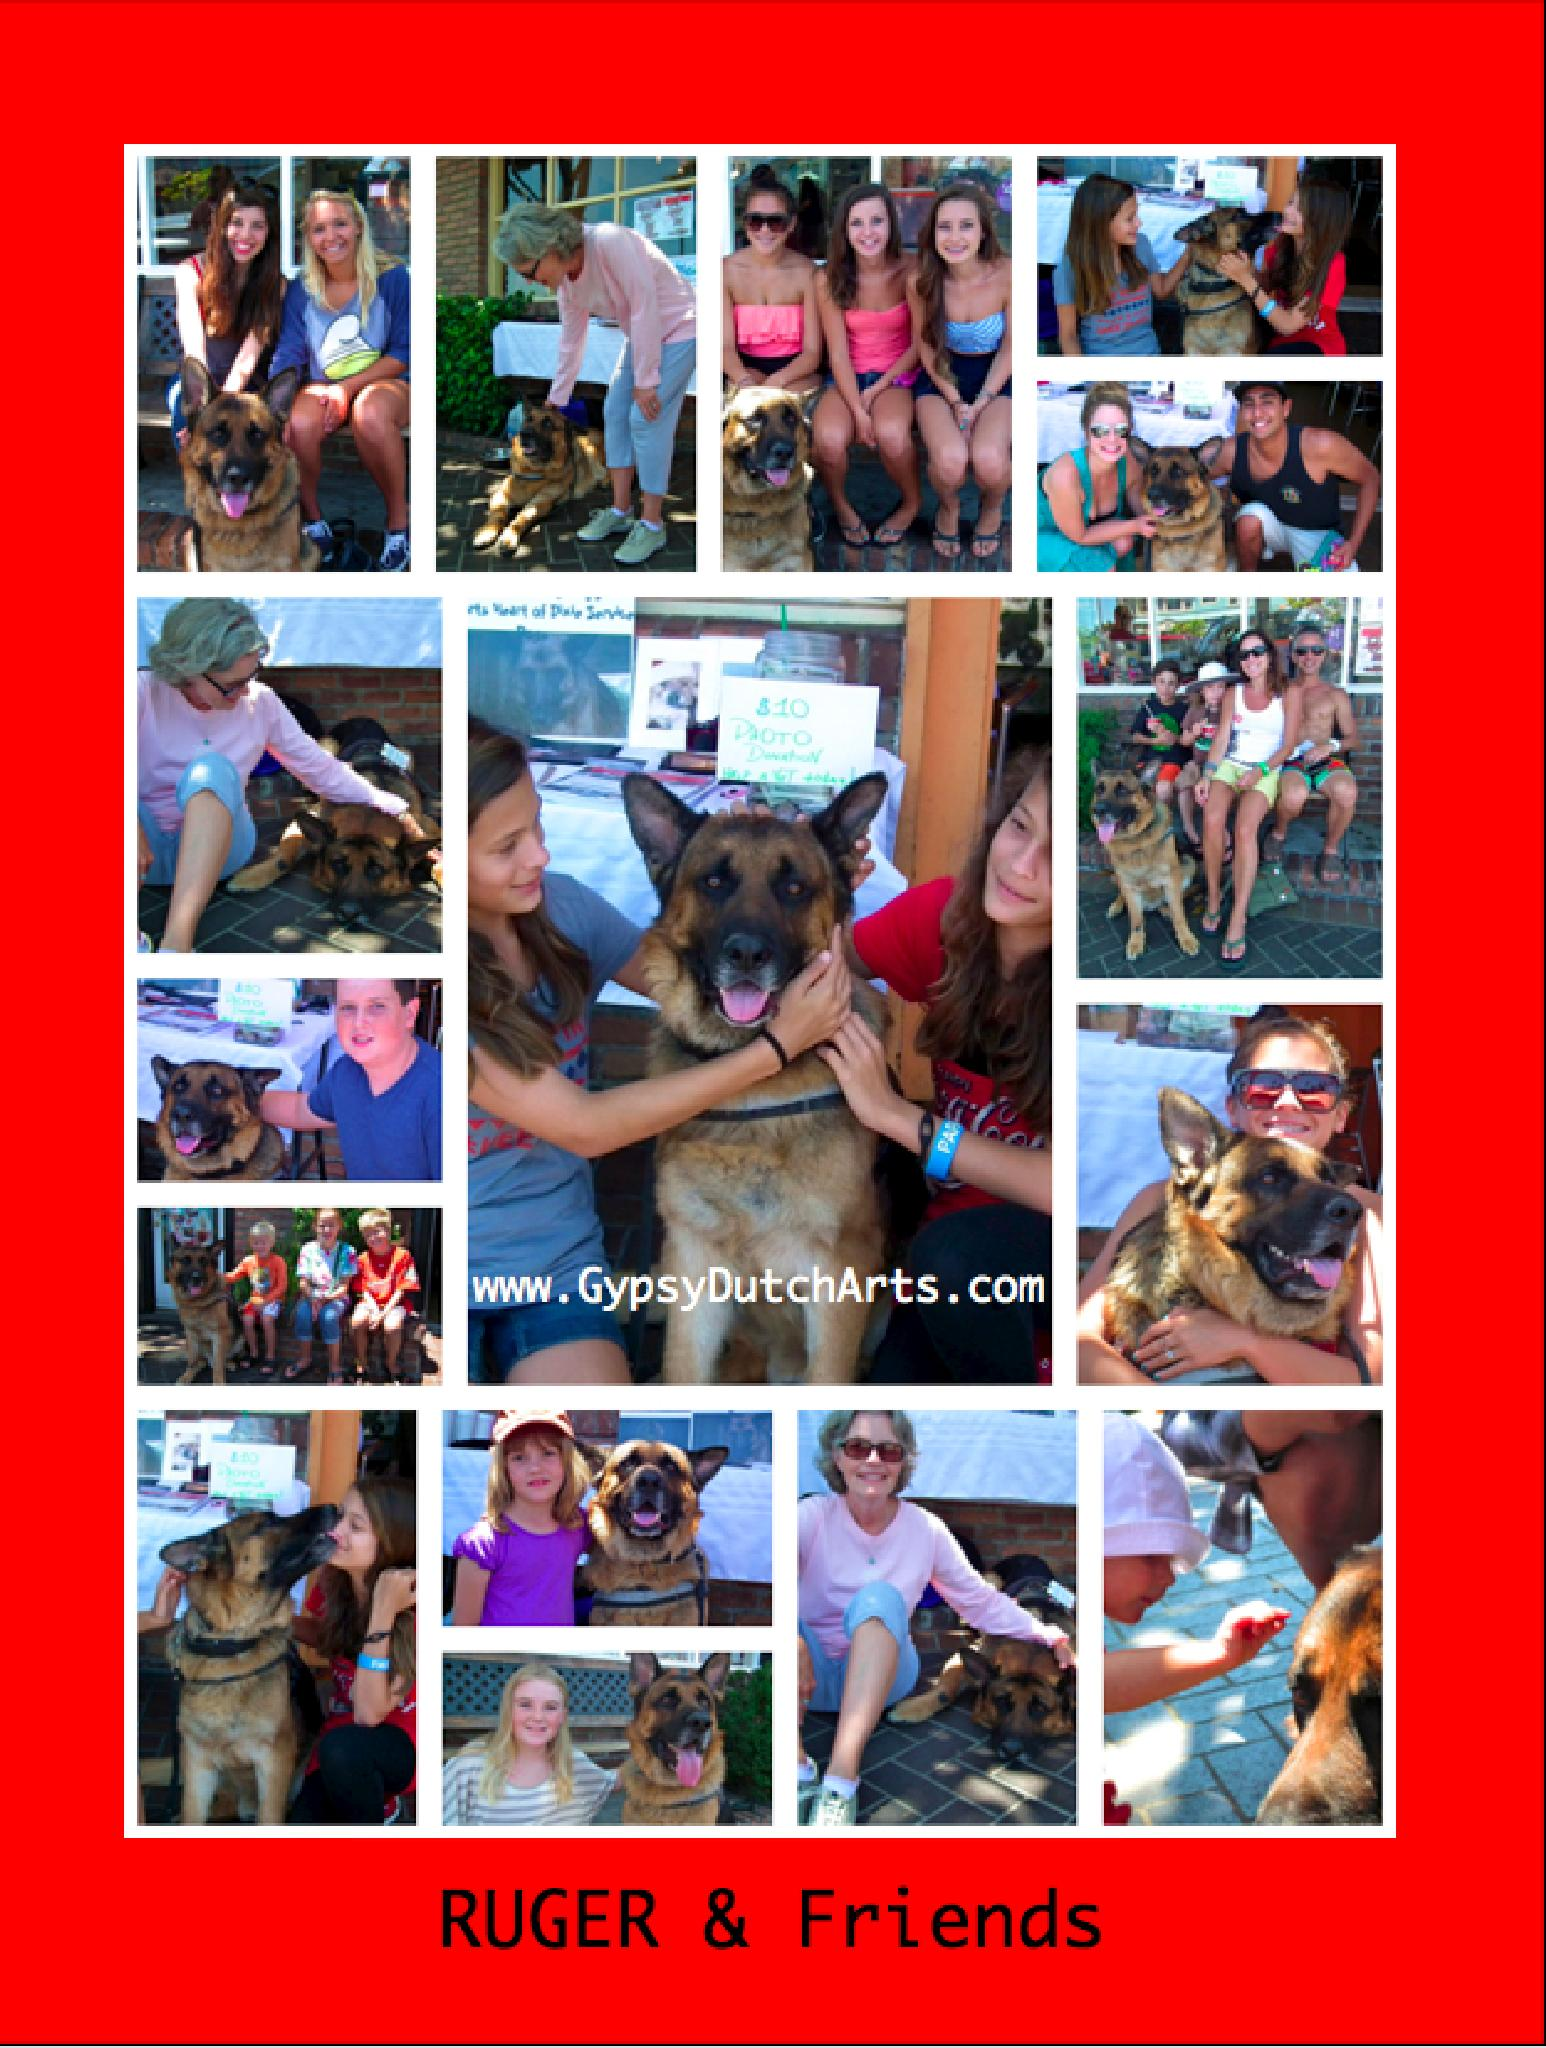 Ruger & Friends collage by GypsyDutch